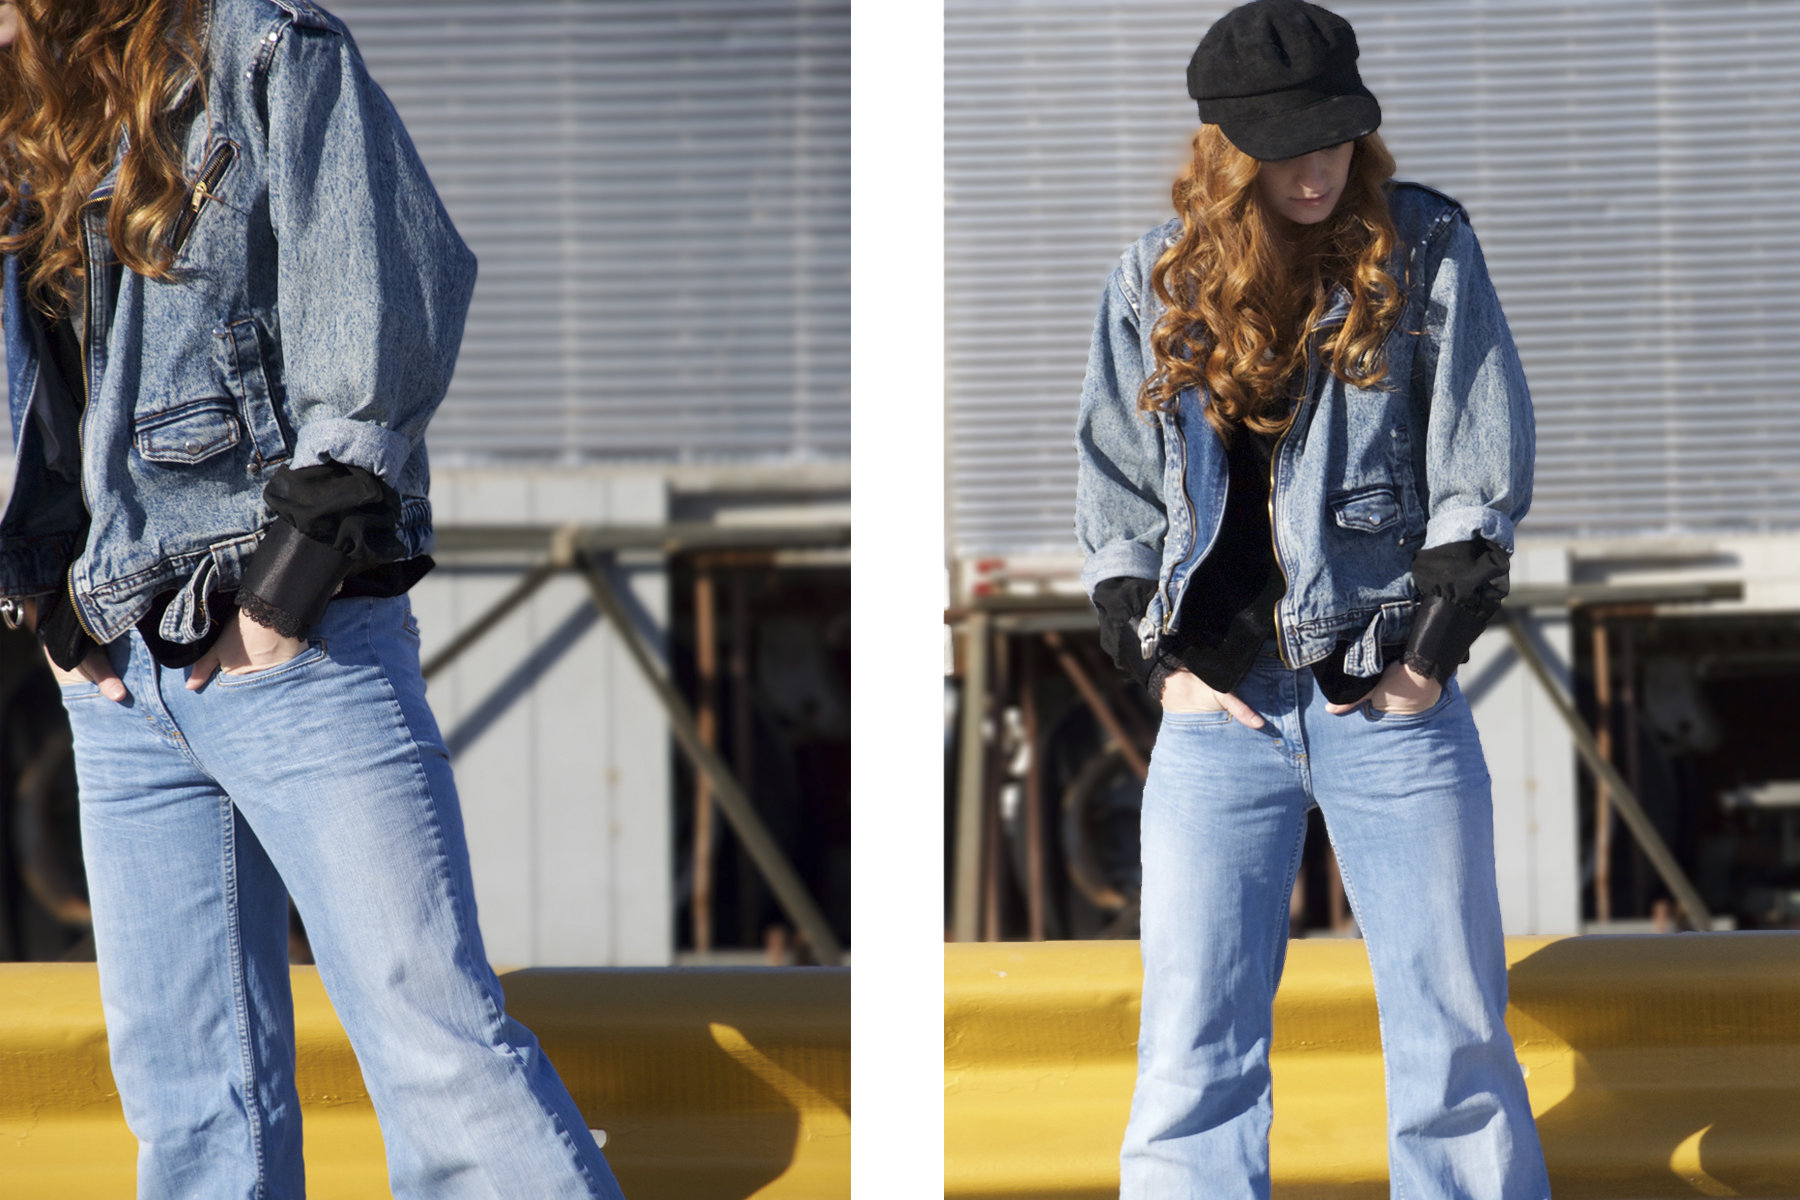 Redhead in Jean jacket and black hat by train tracks